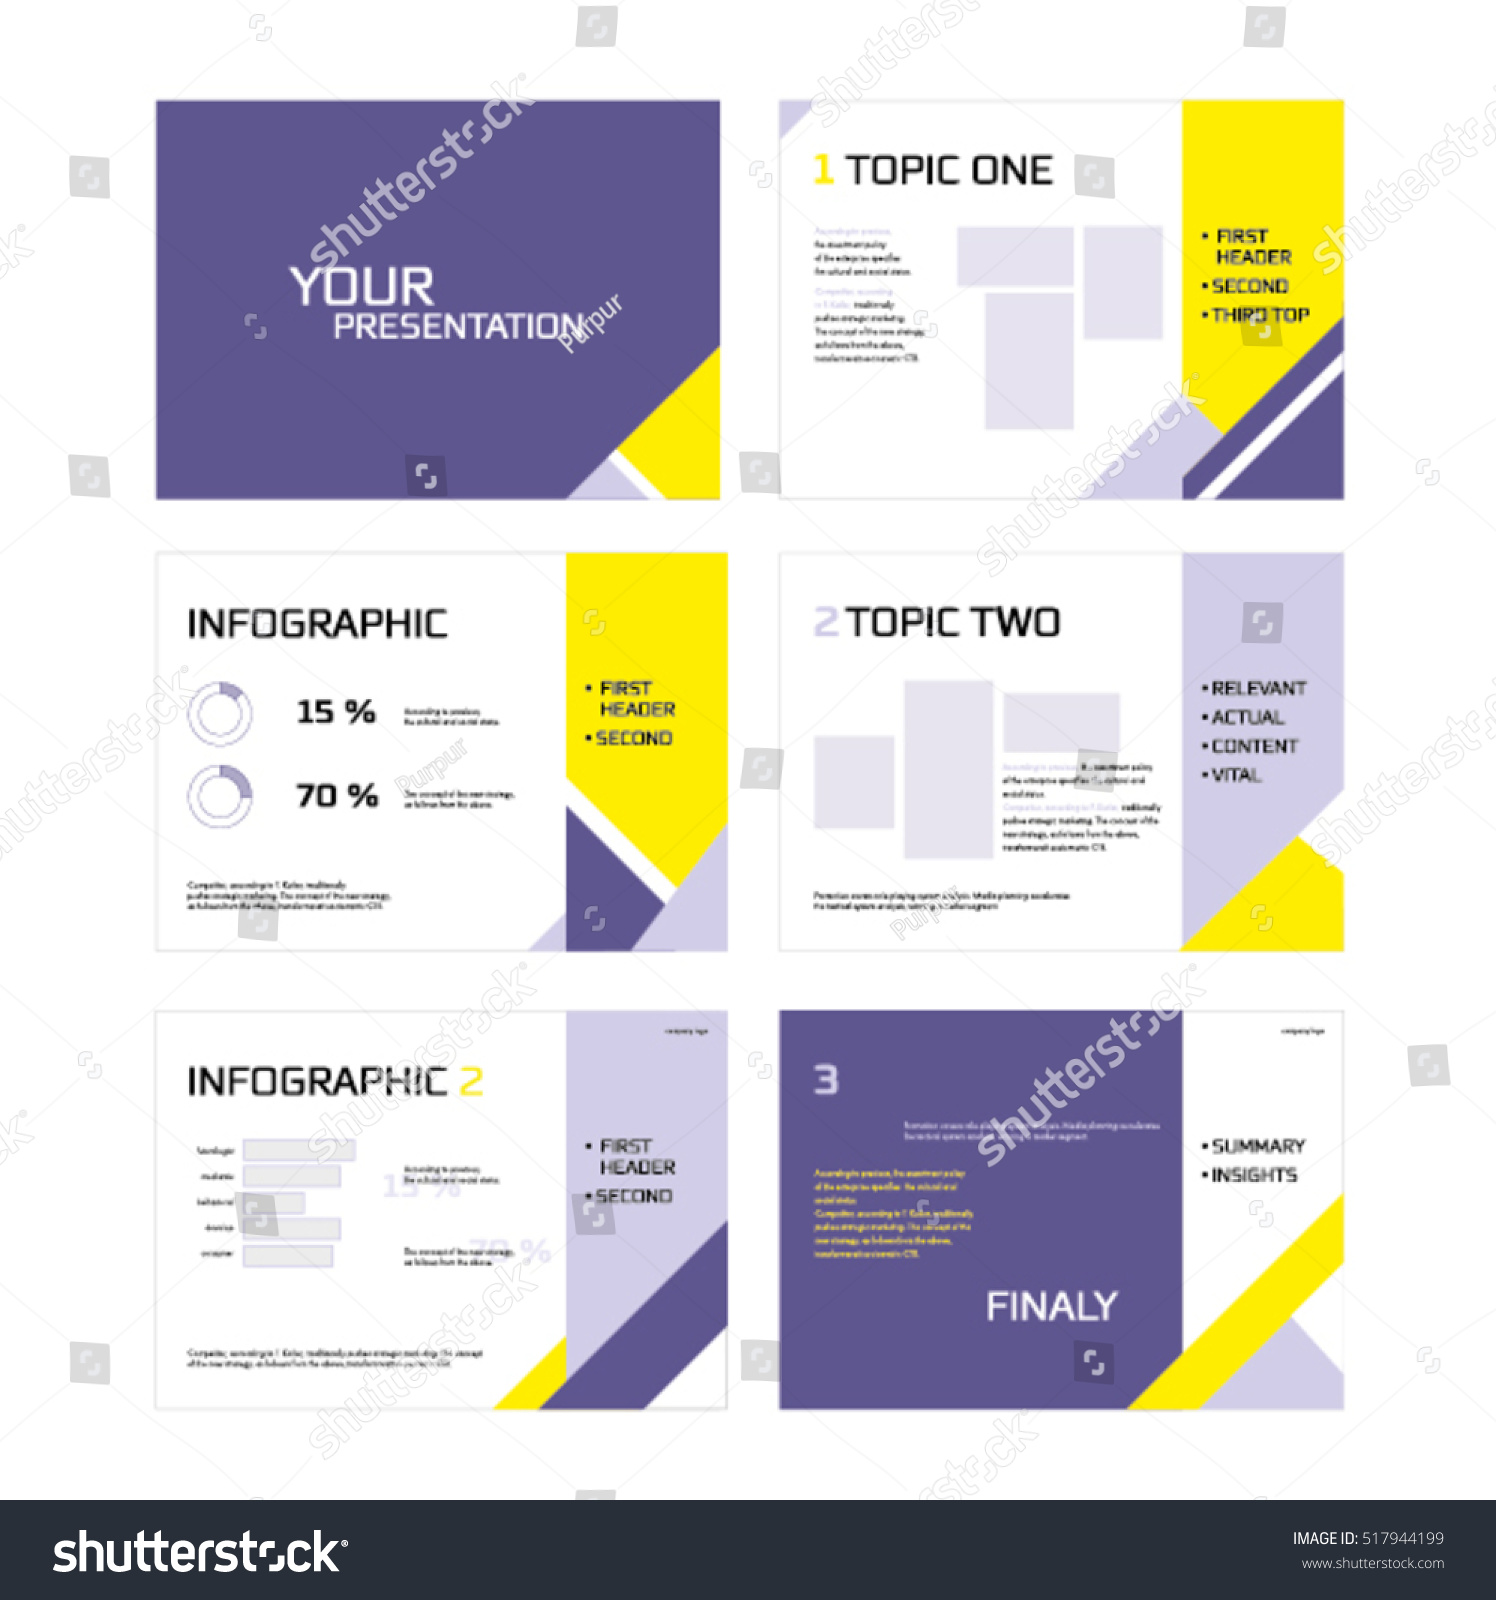 presentation templates infographics images business flyer stock, Powerpoint templates